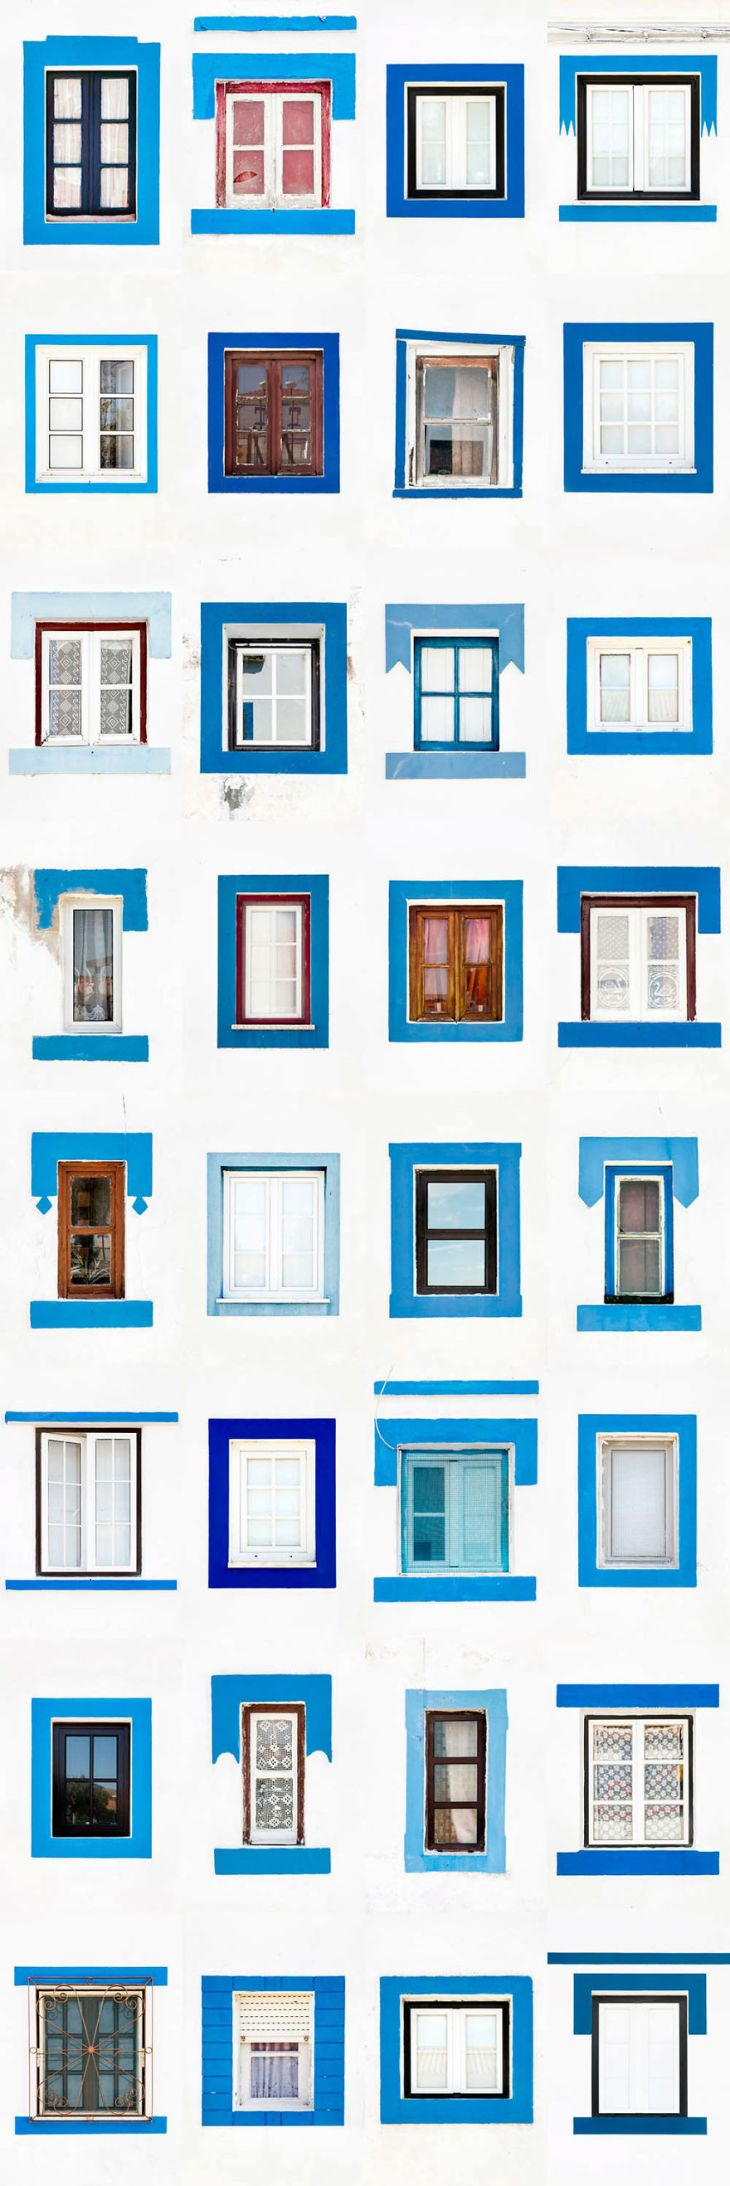 I-traveled-all-over-portugal-to-photograph-windows-more-than-3200-59edaf26dda0c__880